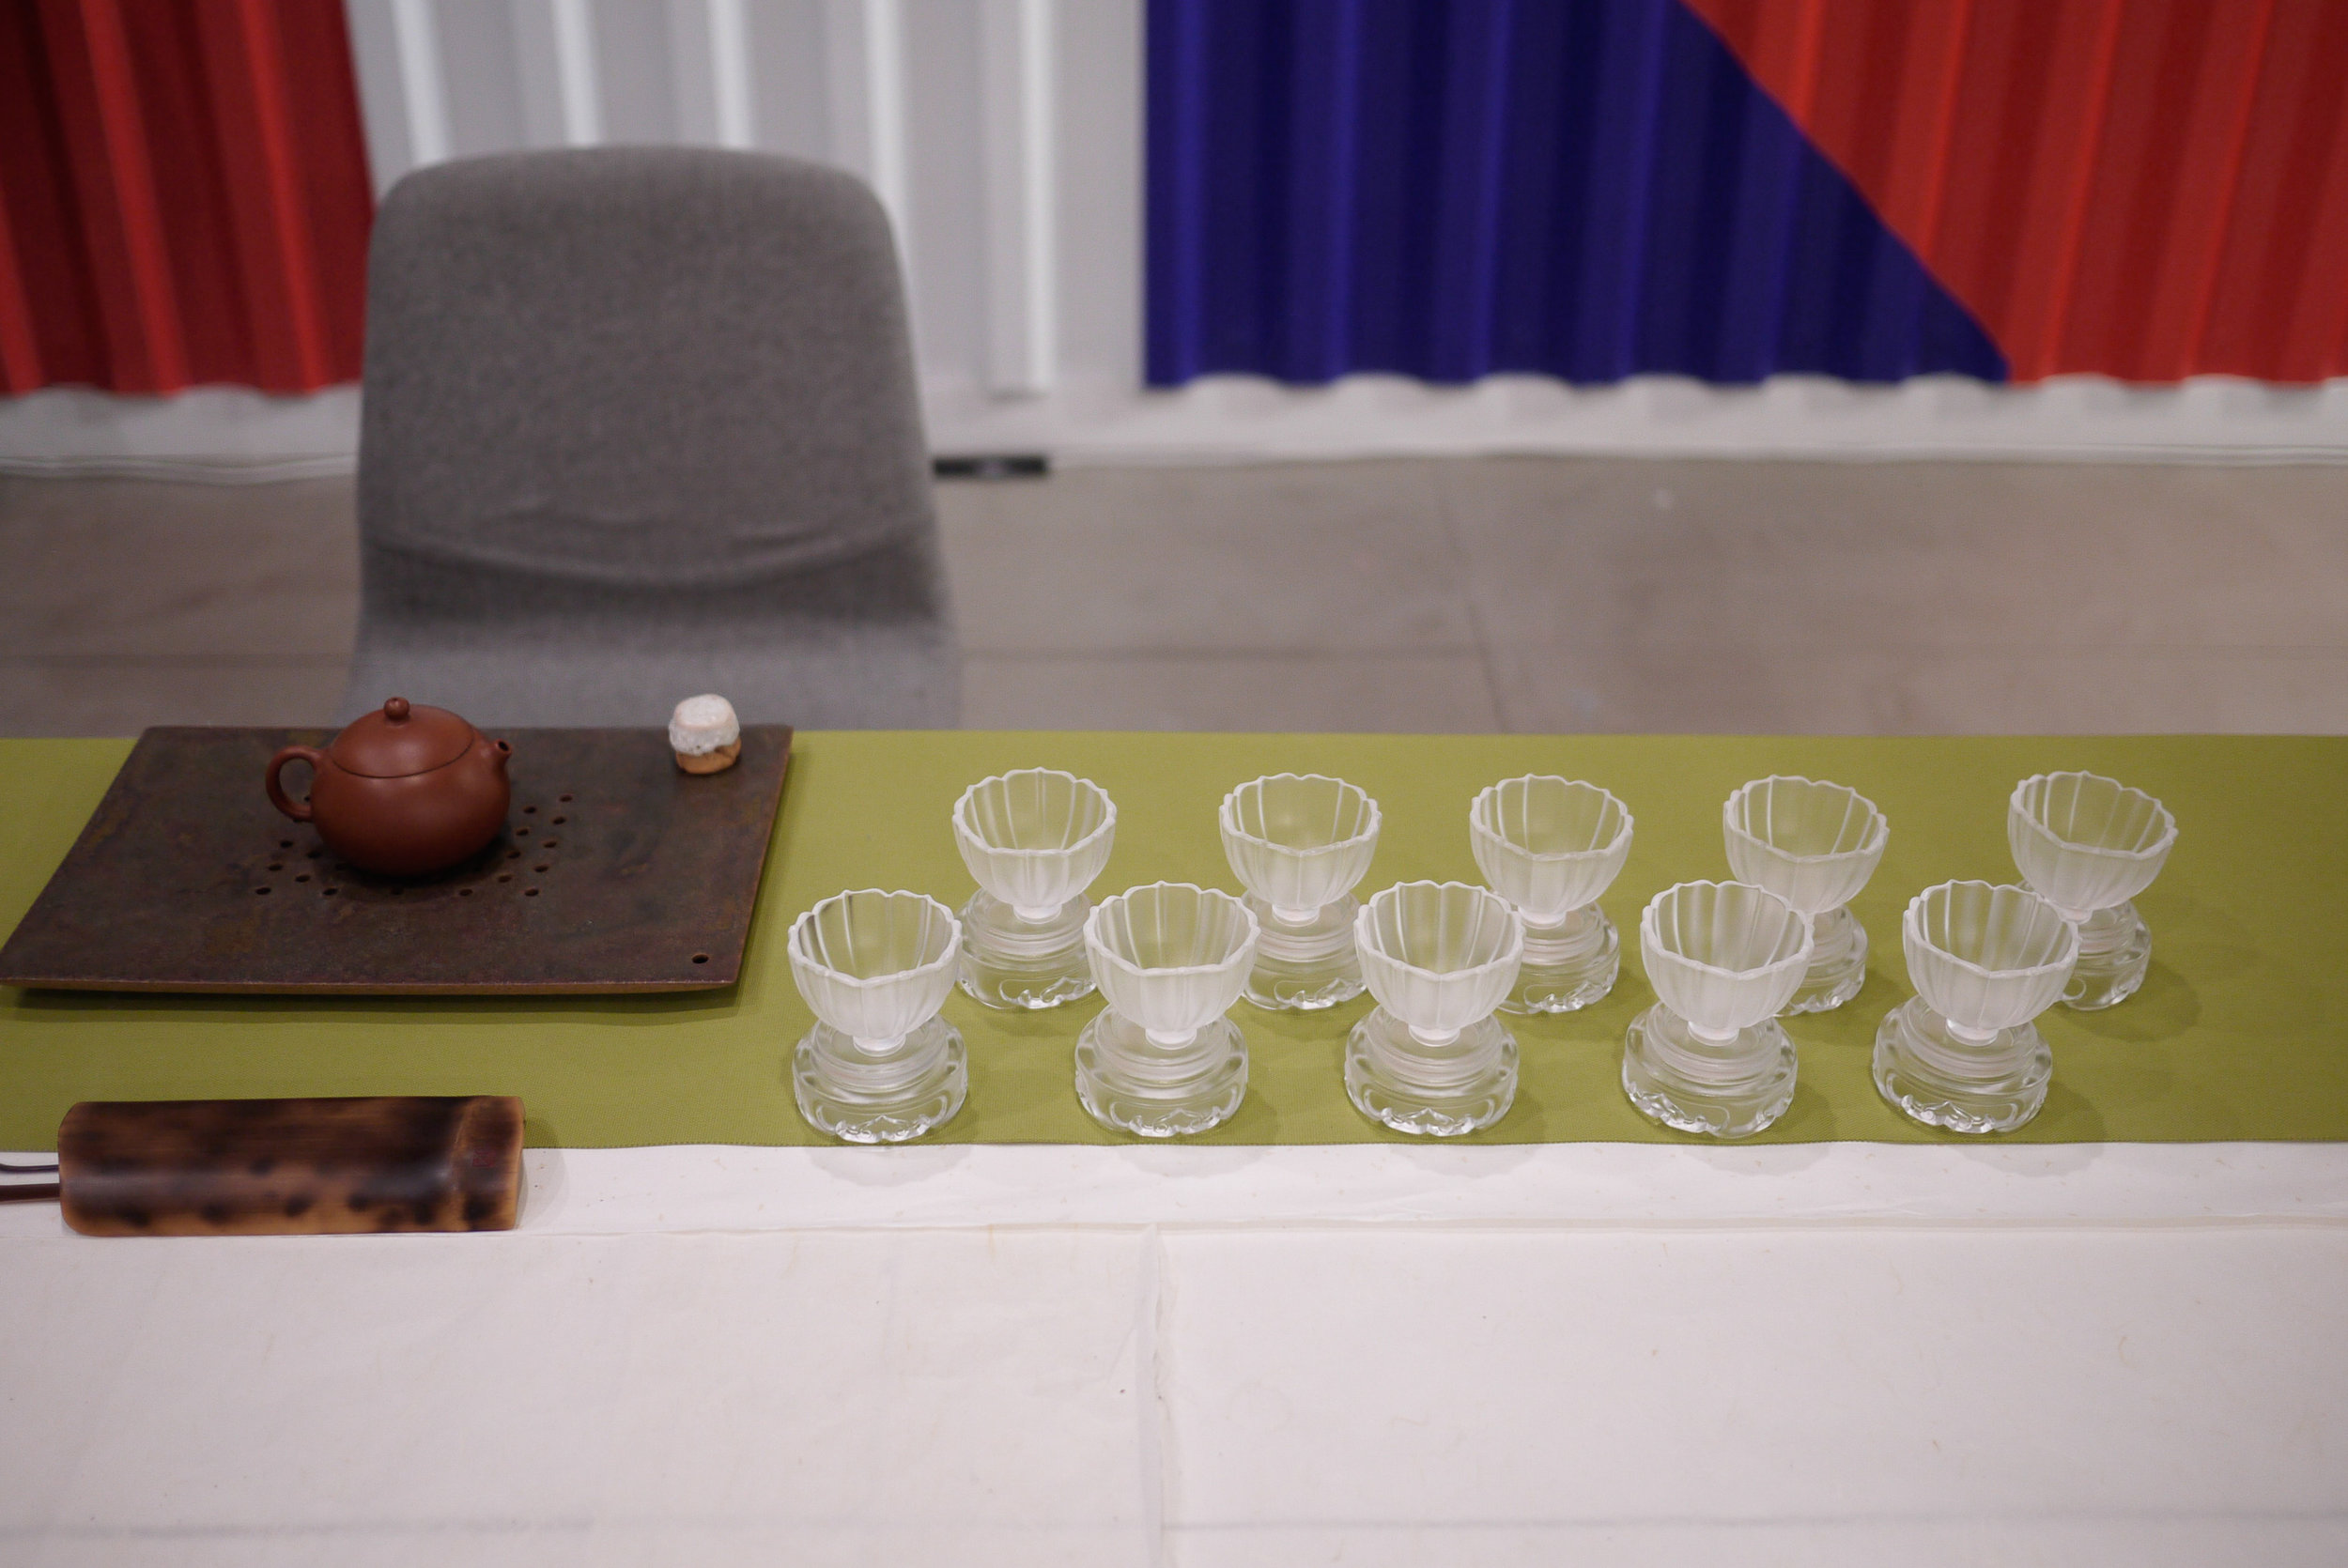 Tea Ceremony at Wix, photographed by Michele Fan